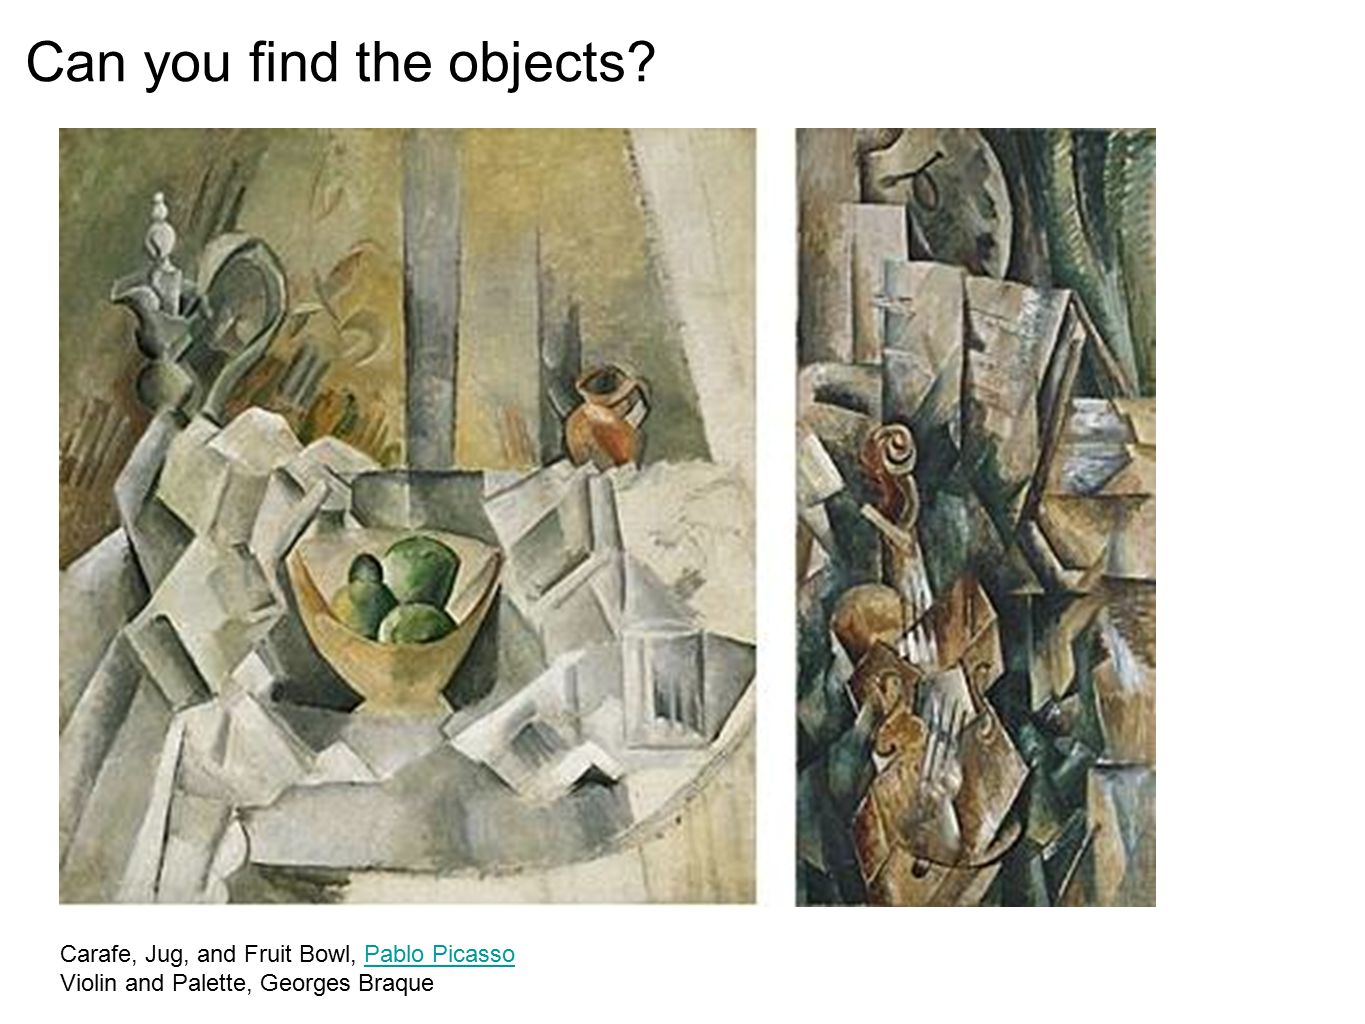 Can you find the objects